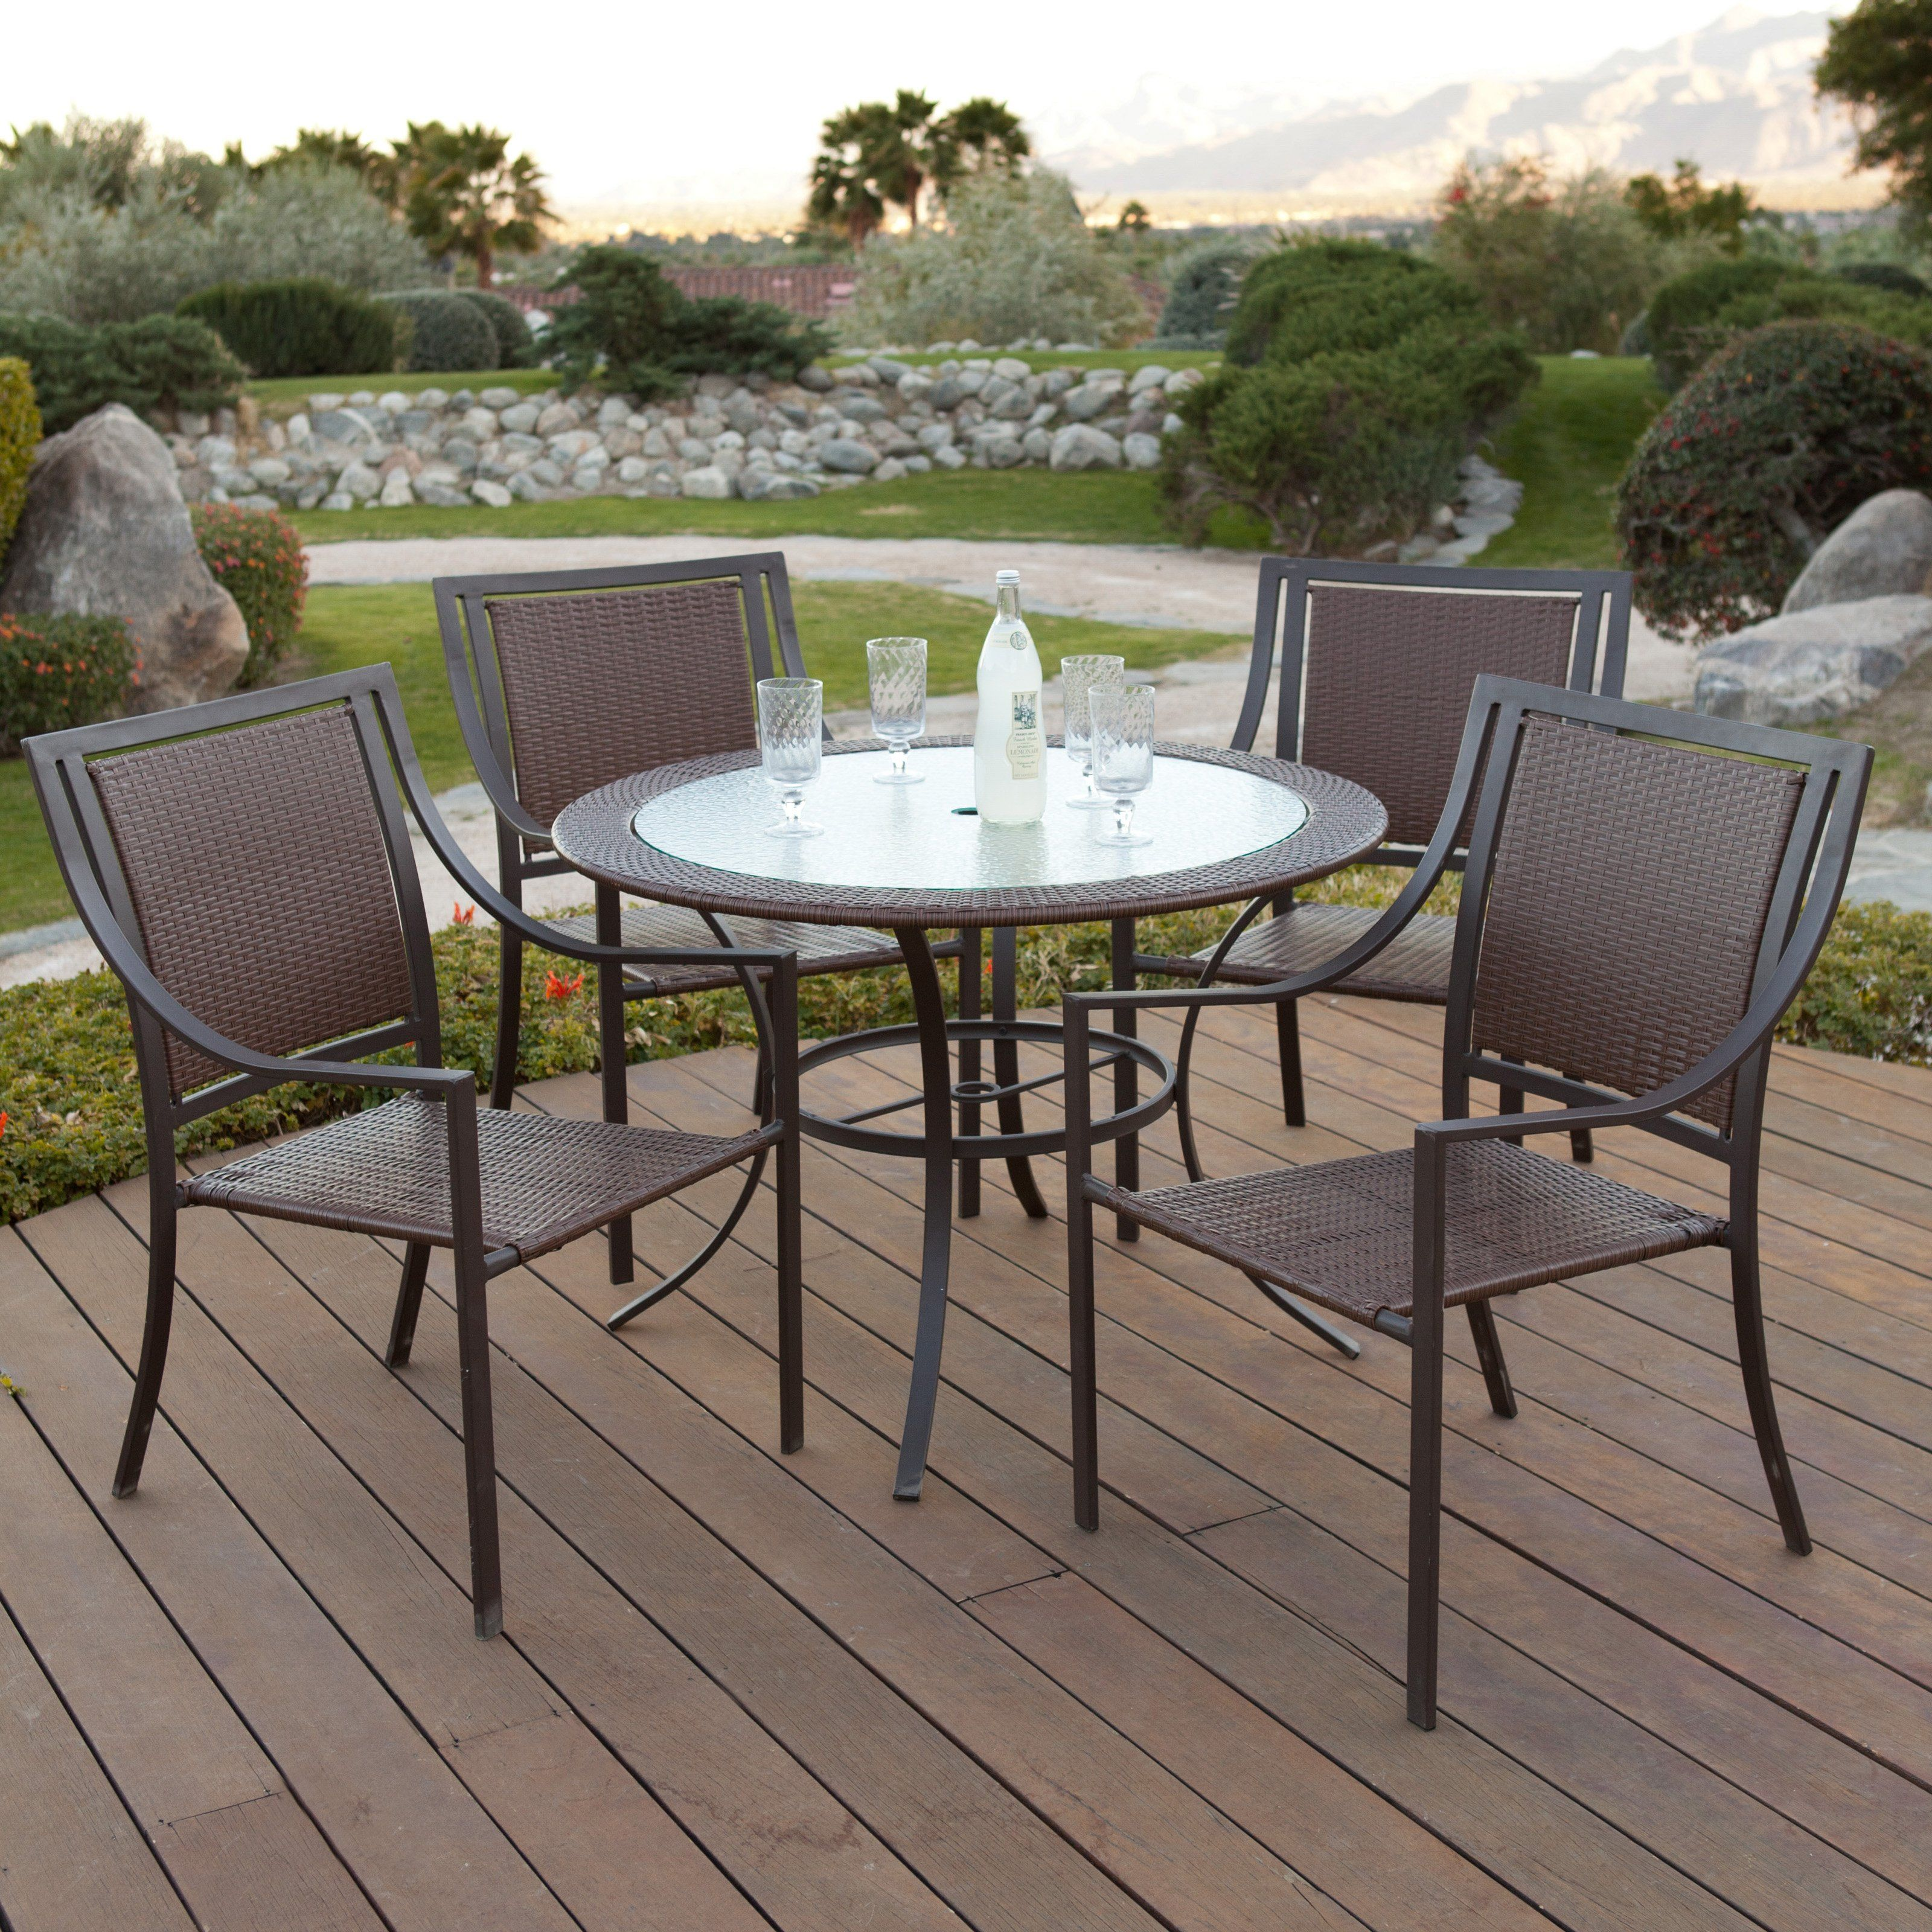 This Is The Outdoor Dining Set We Got To Go On Our Deck We Also